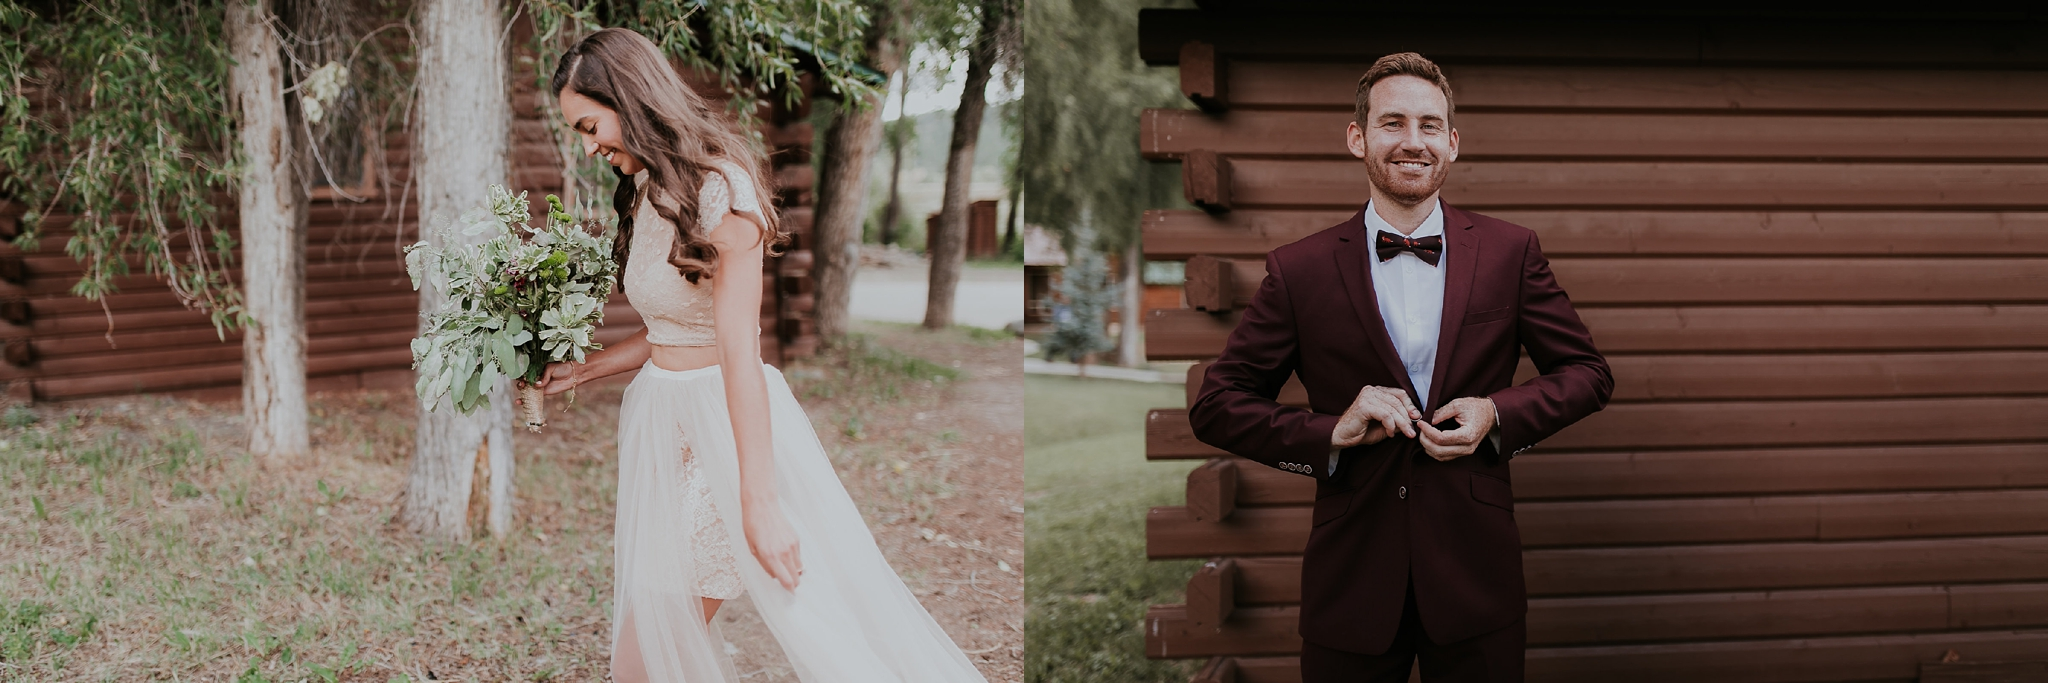 Alicia+lucia+photography+-+albuquerque+wedding+photographer+-+santa+fe+wedding+photography+-+new+mexico+wedding+photographer+-+new+mexico+wedding+-+wedding+venues+-+new+mexico+wedding+venues+-+colorado+wedding+venues_0071.jpg